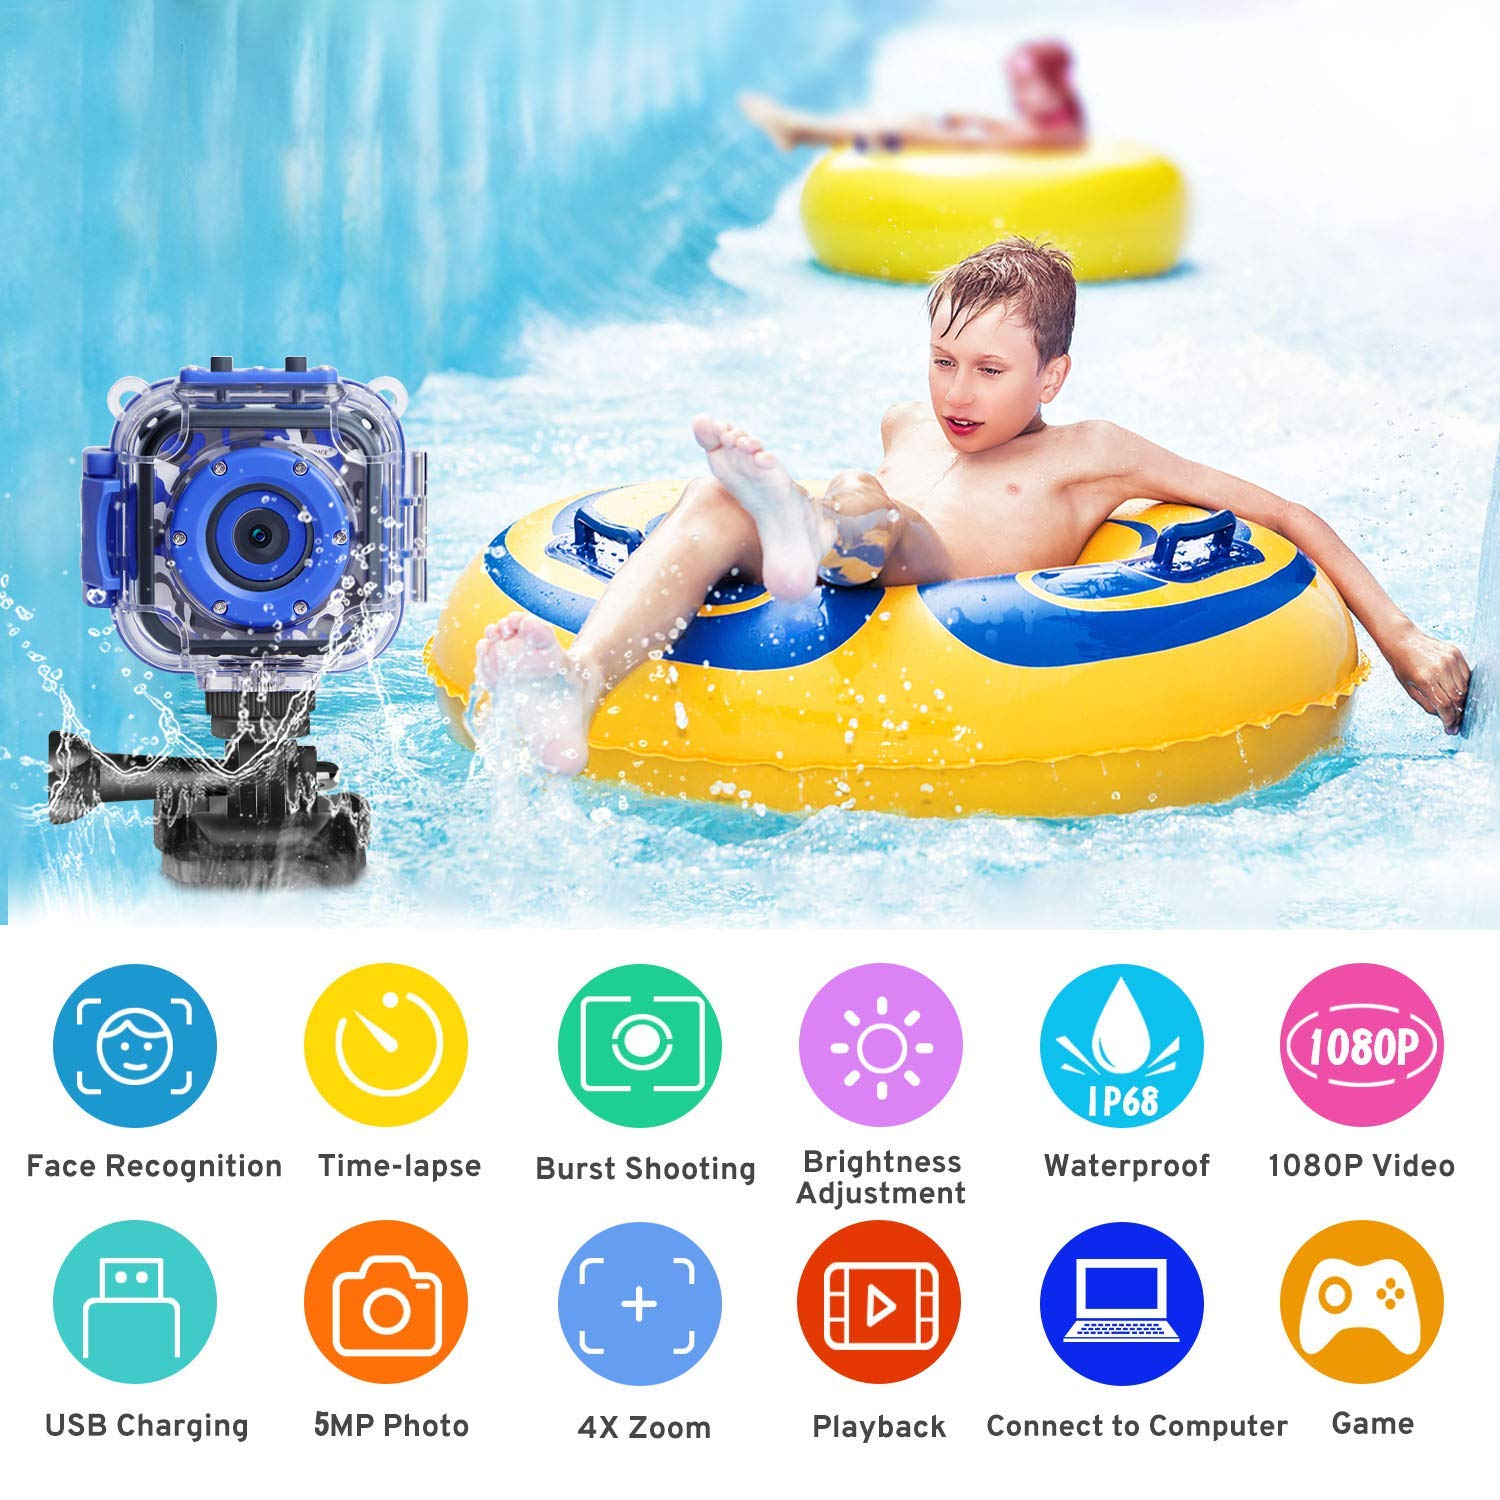 DROGRACE Children Kids Camera Waterproof Digital Video HD Action Camera 1080P Sports Camera Camcorder DV for Boys Birthday Holiday Gift Learn Camera Toy 1.77\'\' LCD Screen (Navy Blue)